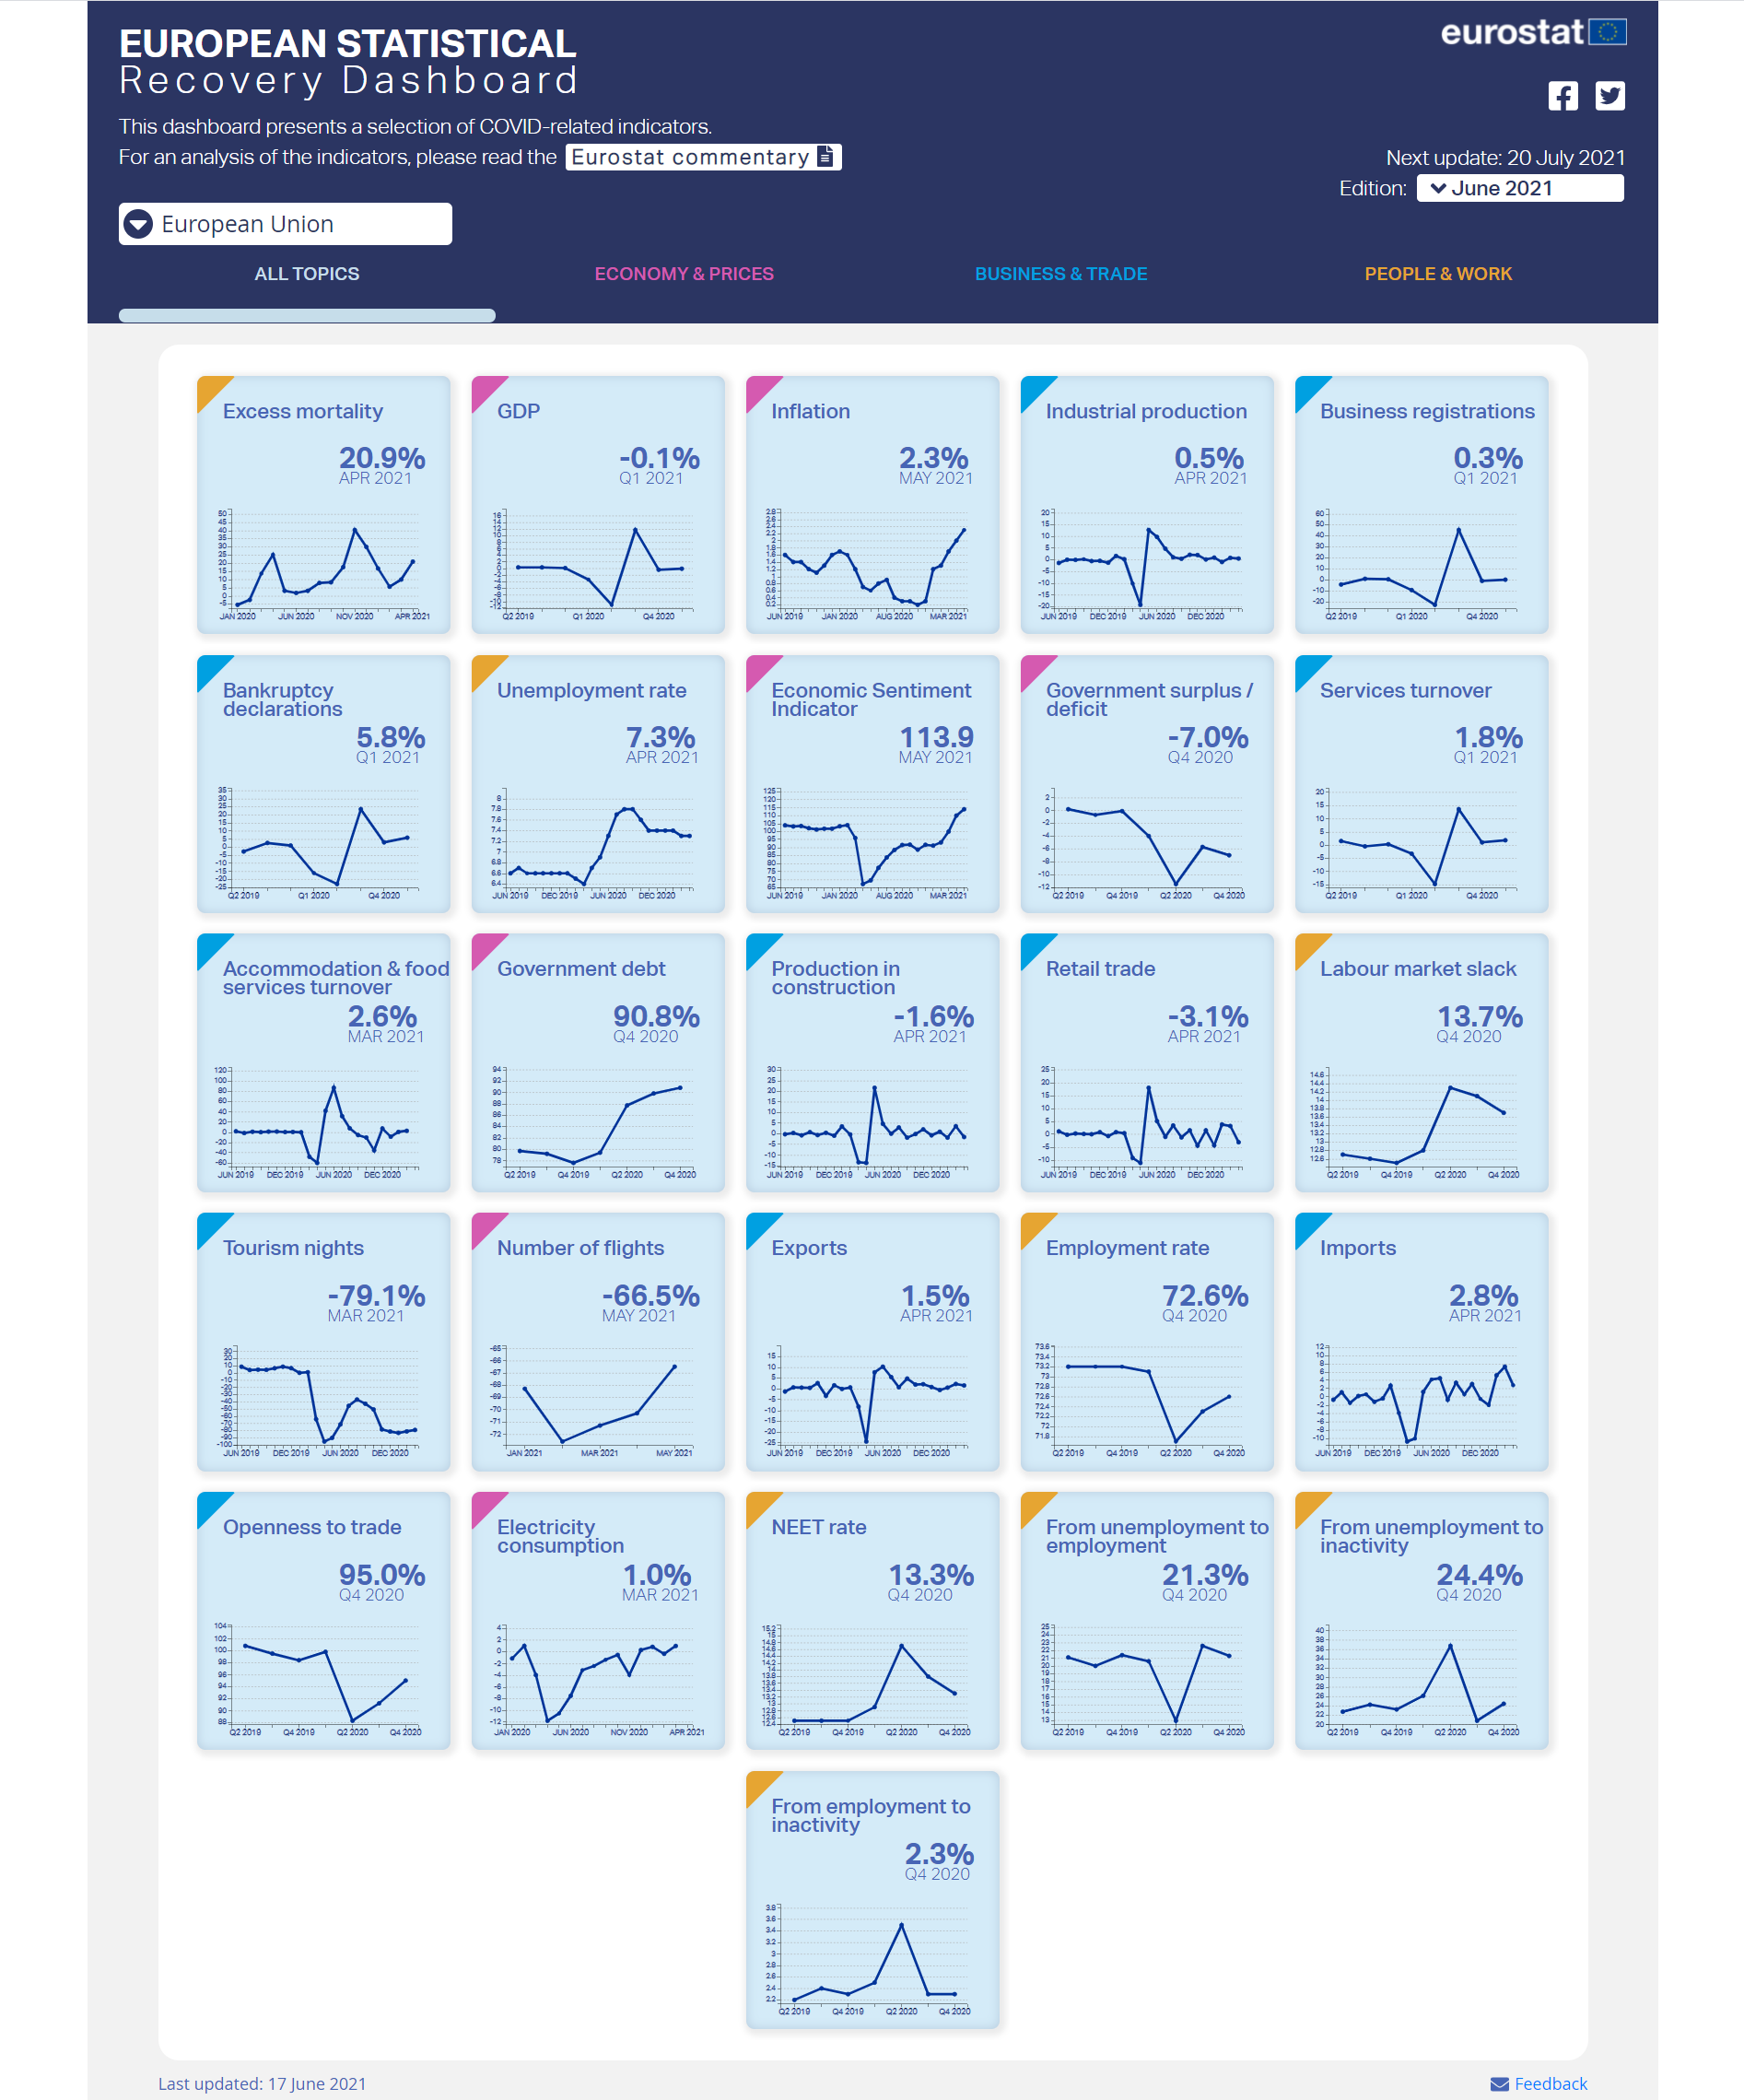 European Statistical Recovery Dashboard: June edition